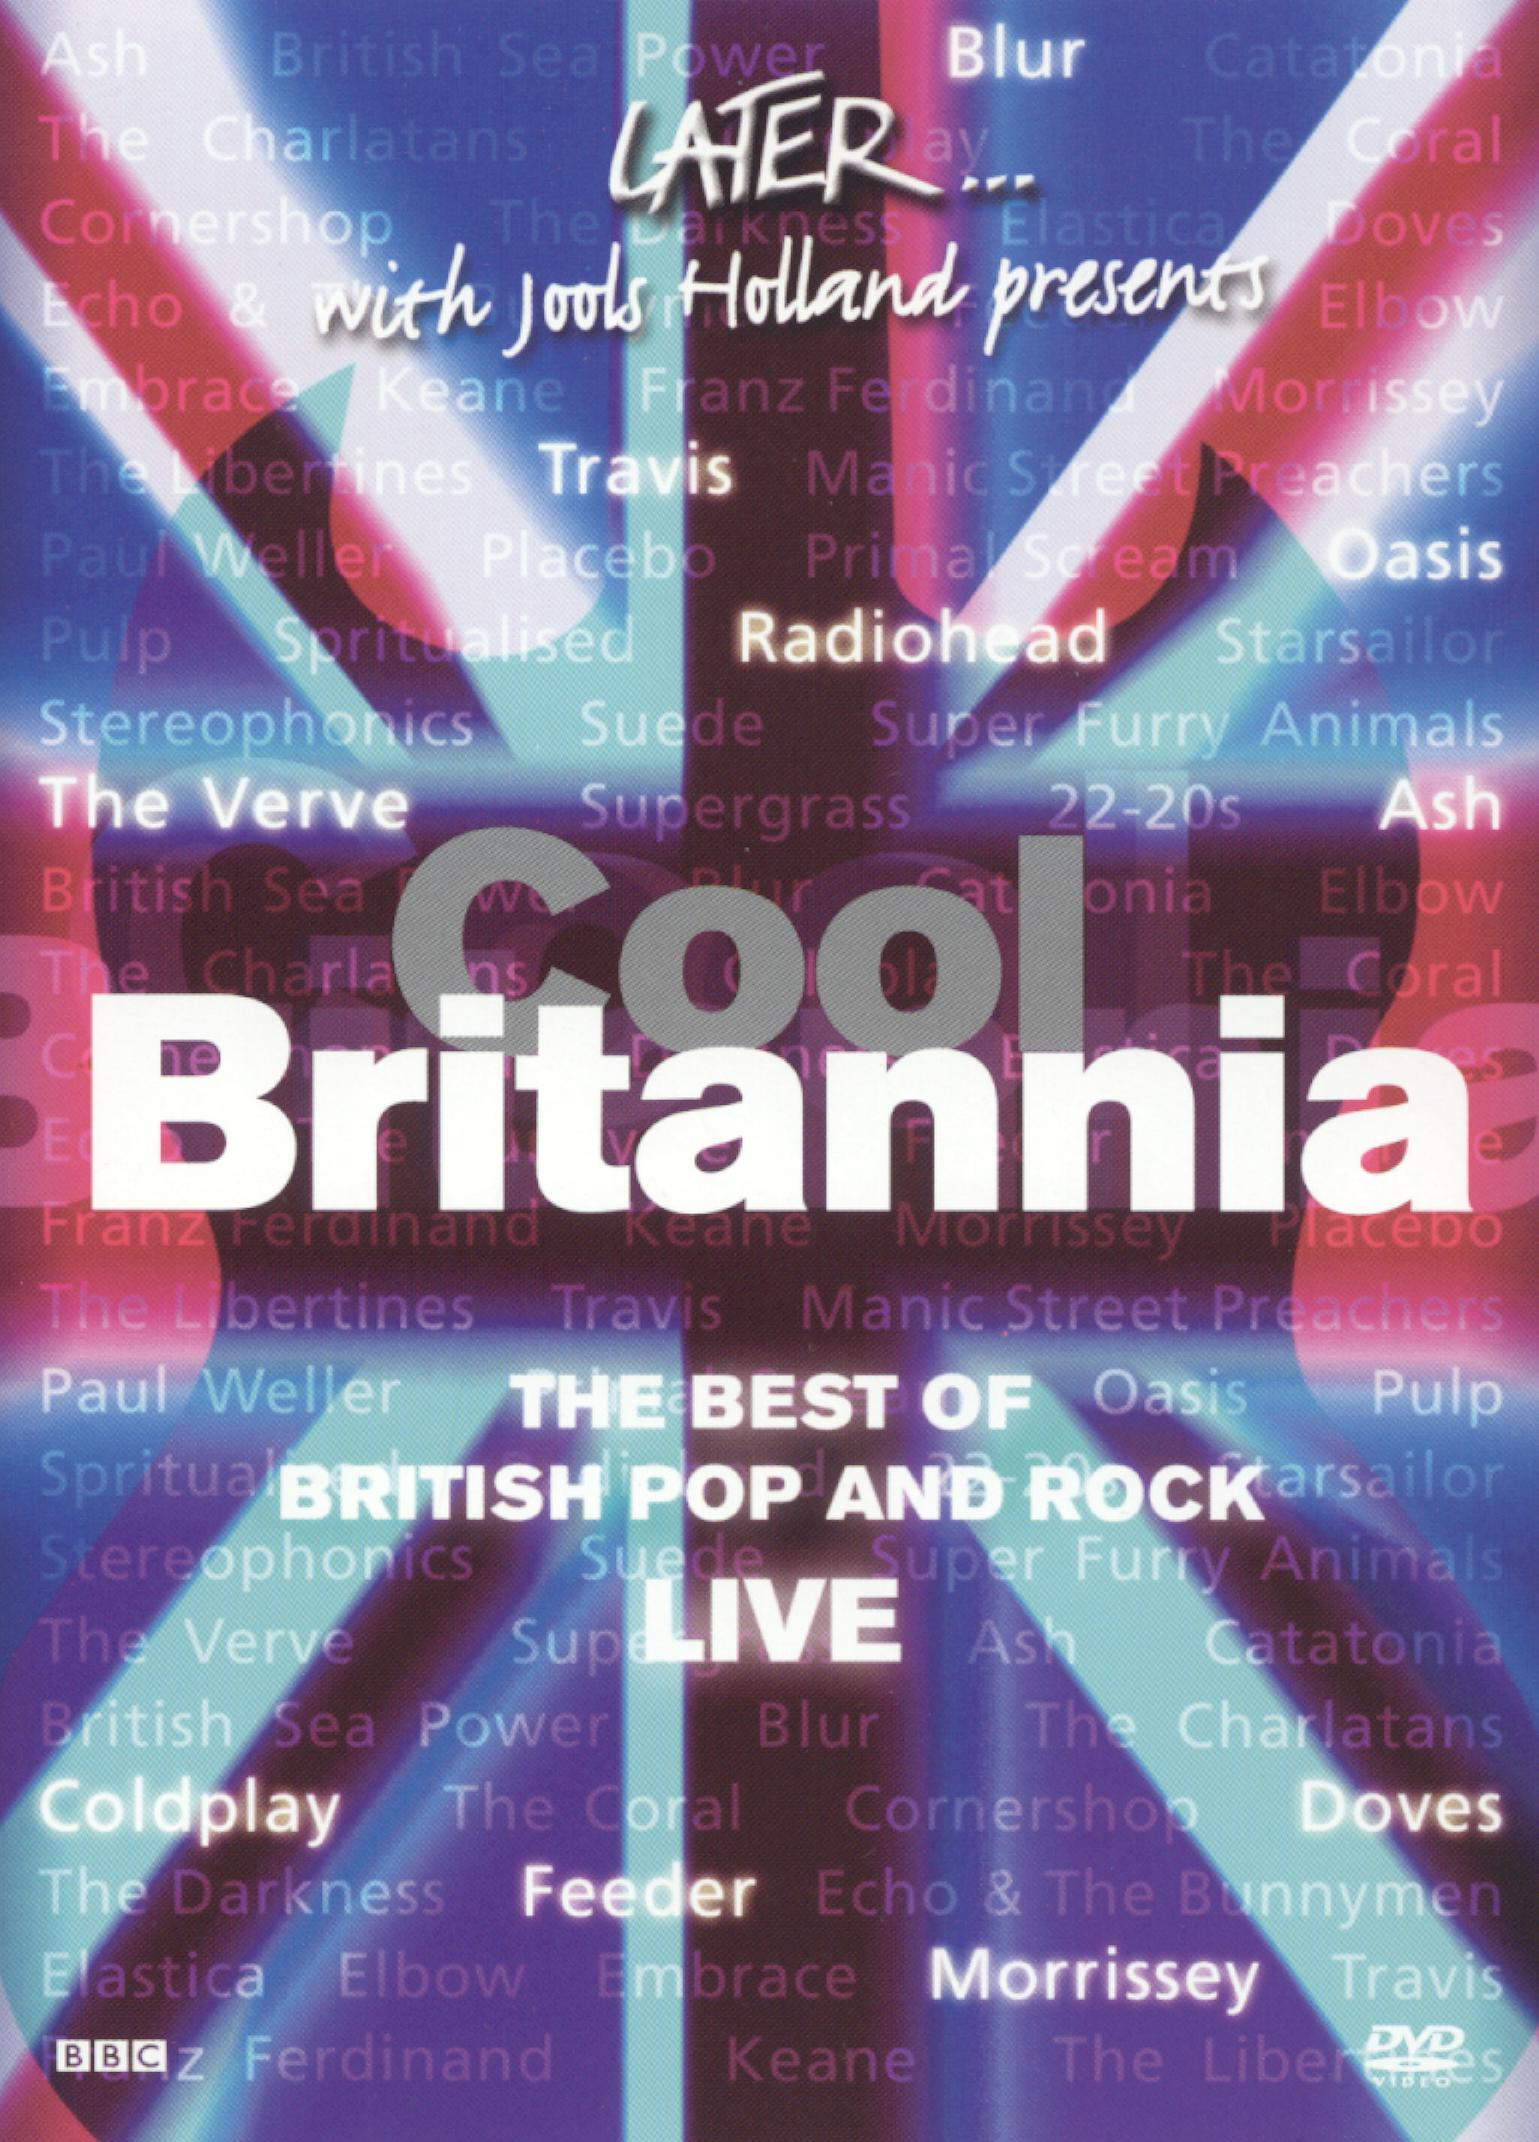 Later... With Jools Holland: Cool Britannia - The Best of British Pop and Rock Live